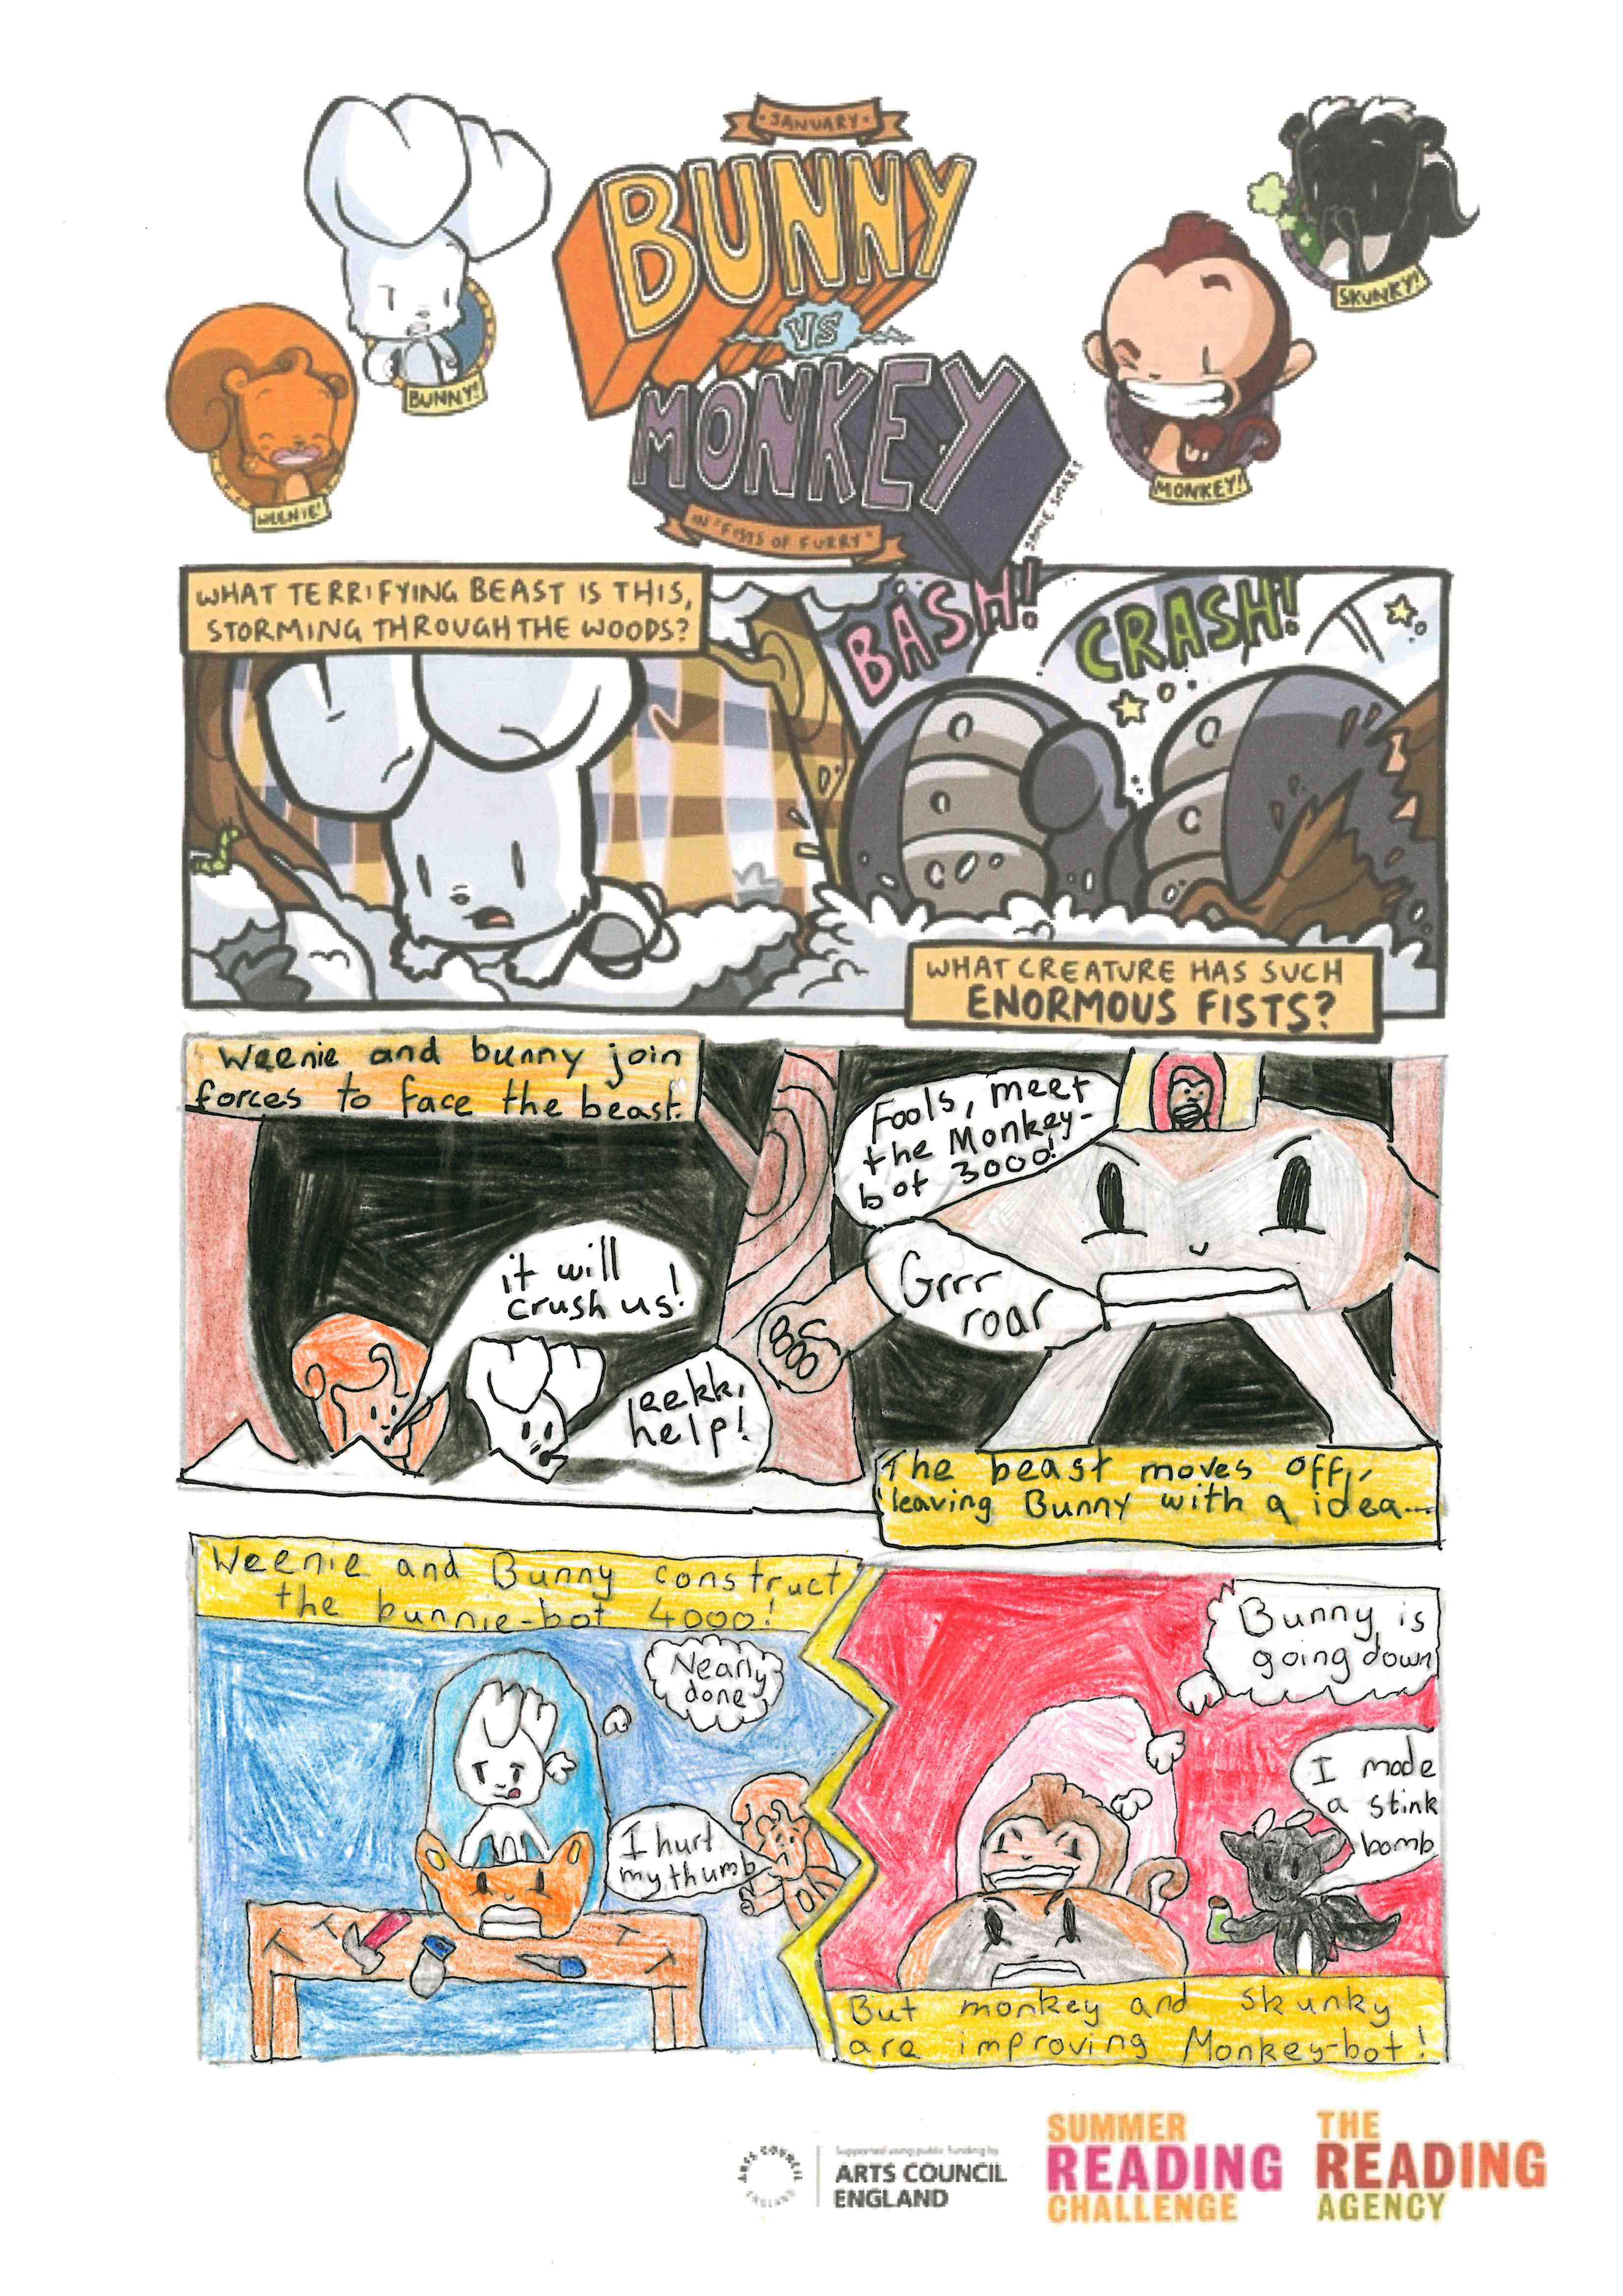 Spring Finish the Comic Competition Winner - Laura (side 1).jpg